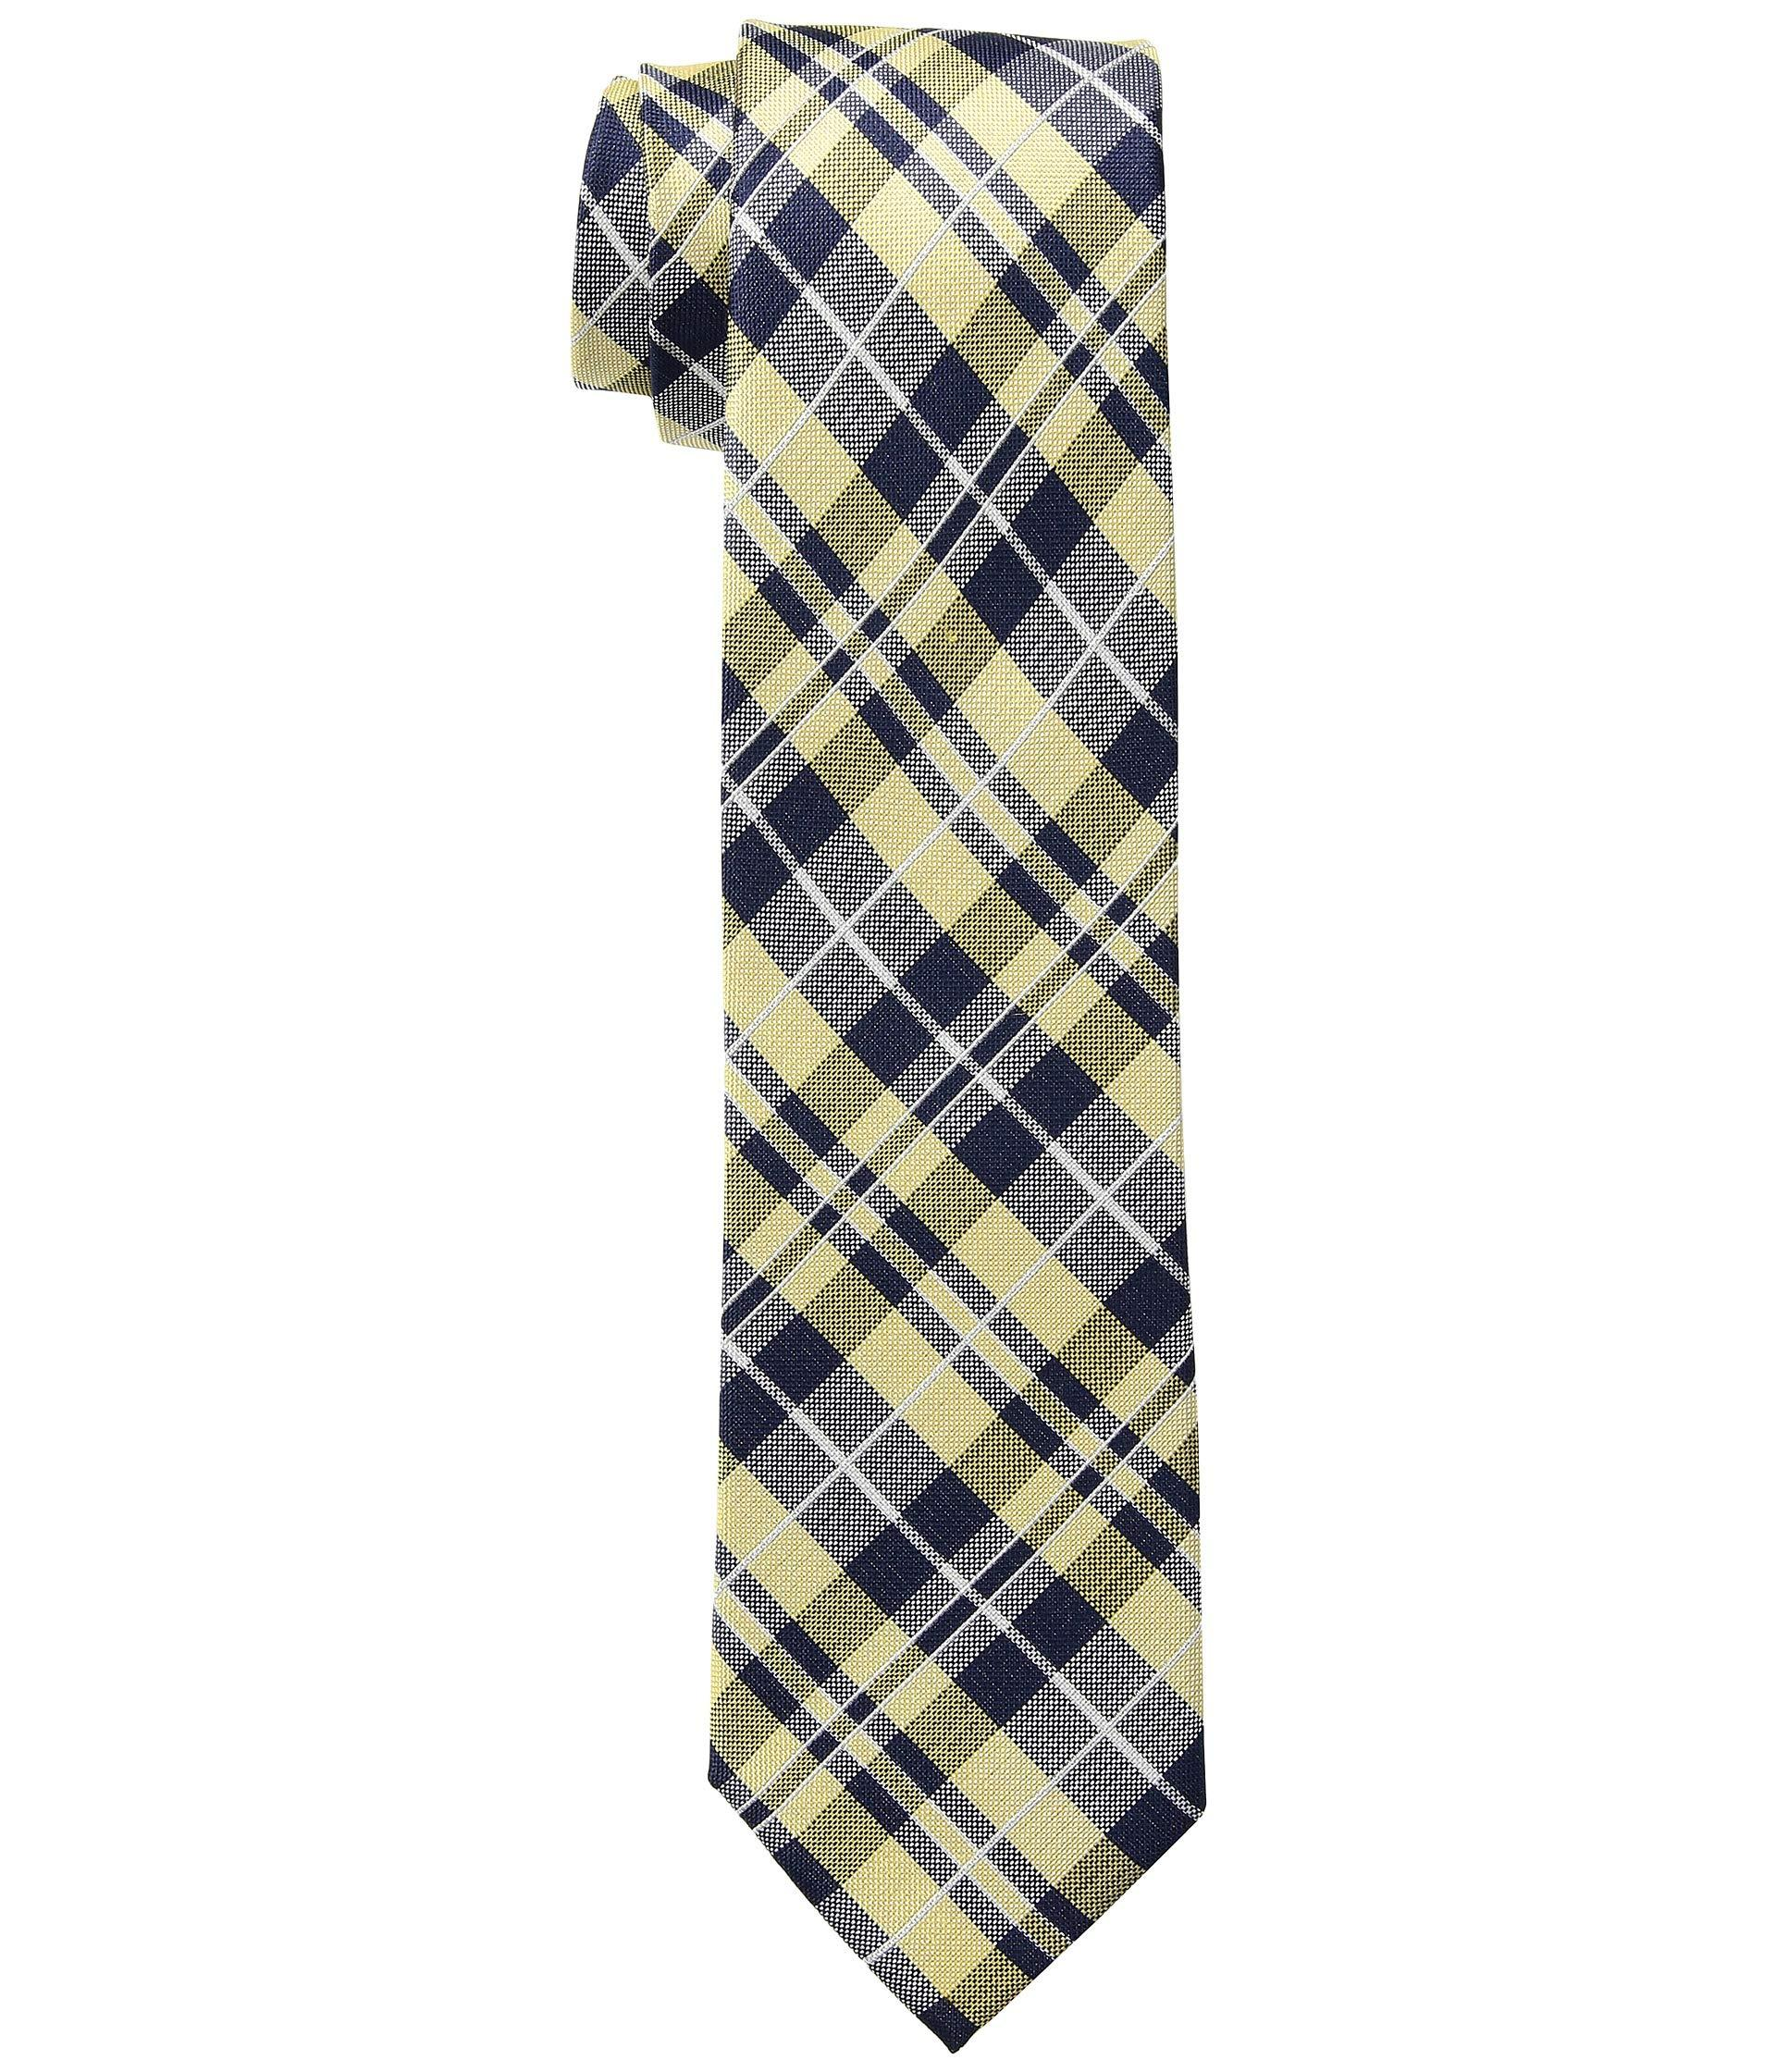 770d172aac27 Lyst - Tommy Hilfiger West Side Check in Yellow for Men - Save 59%